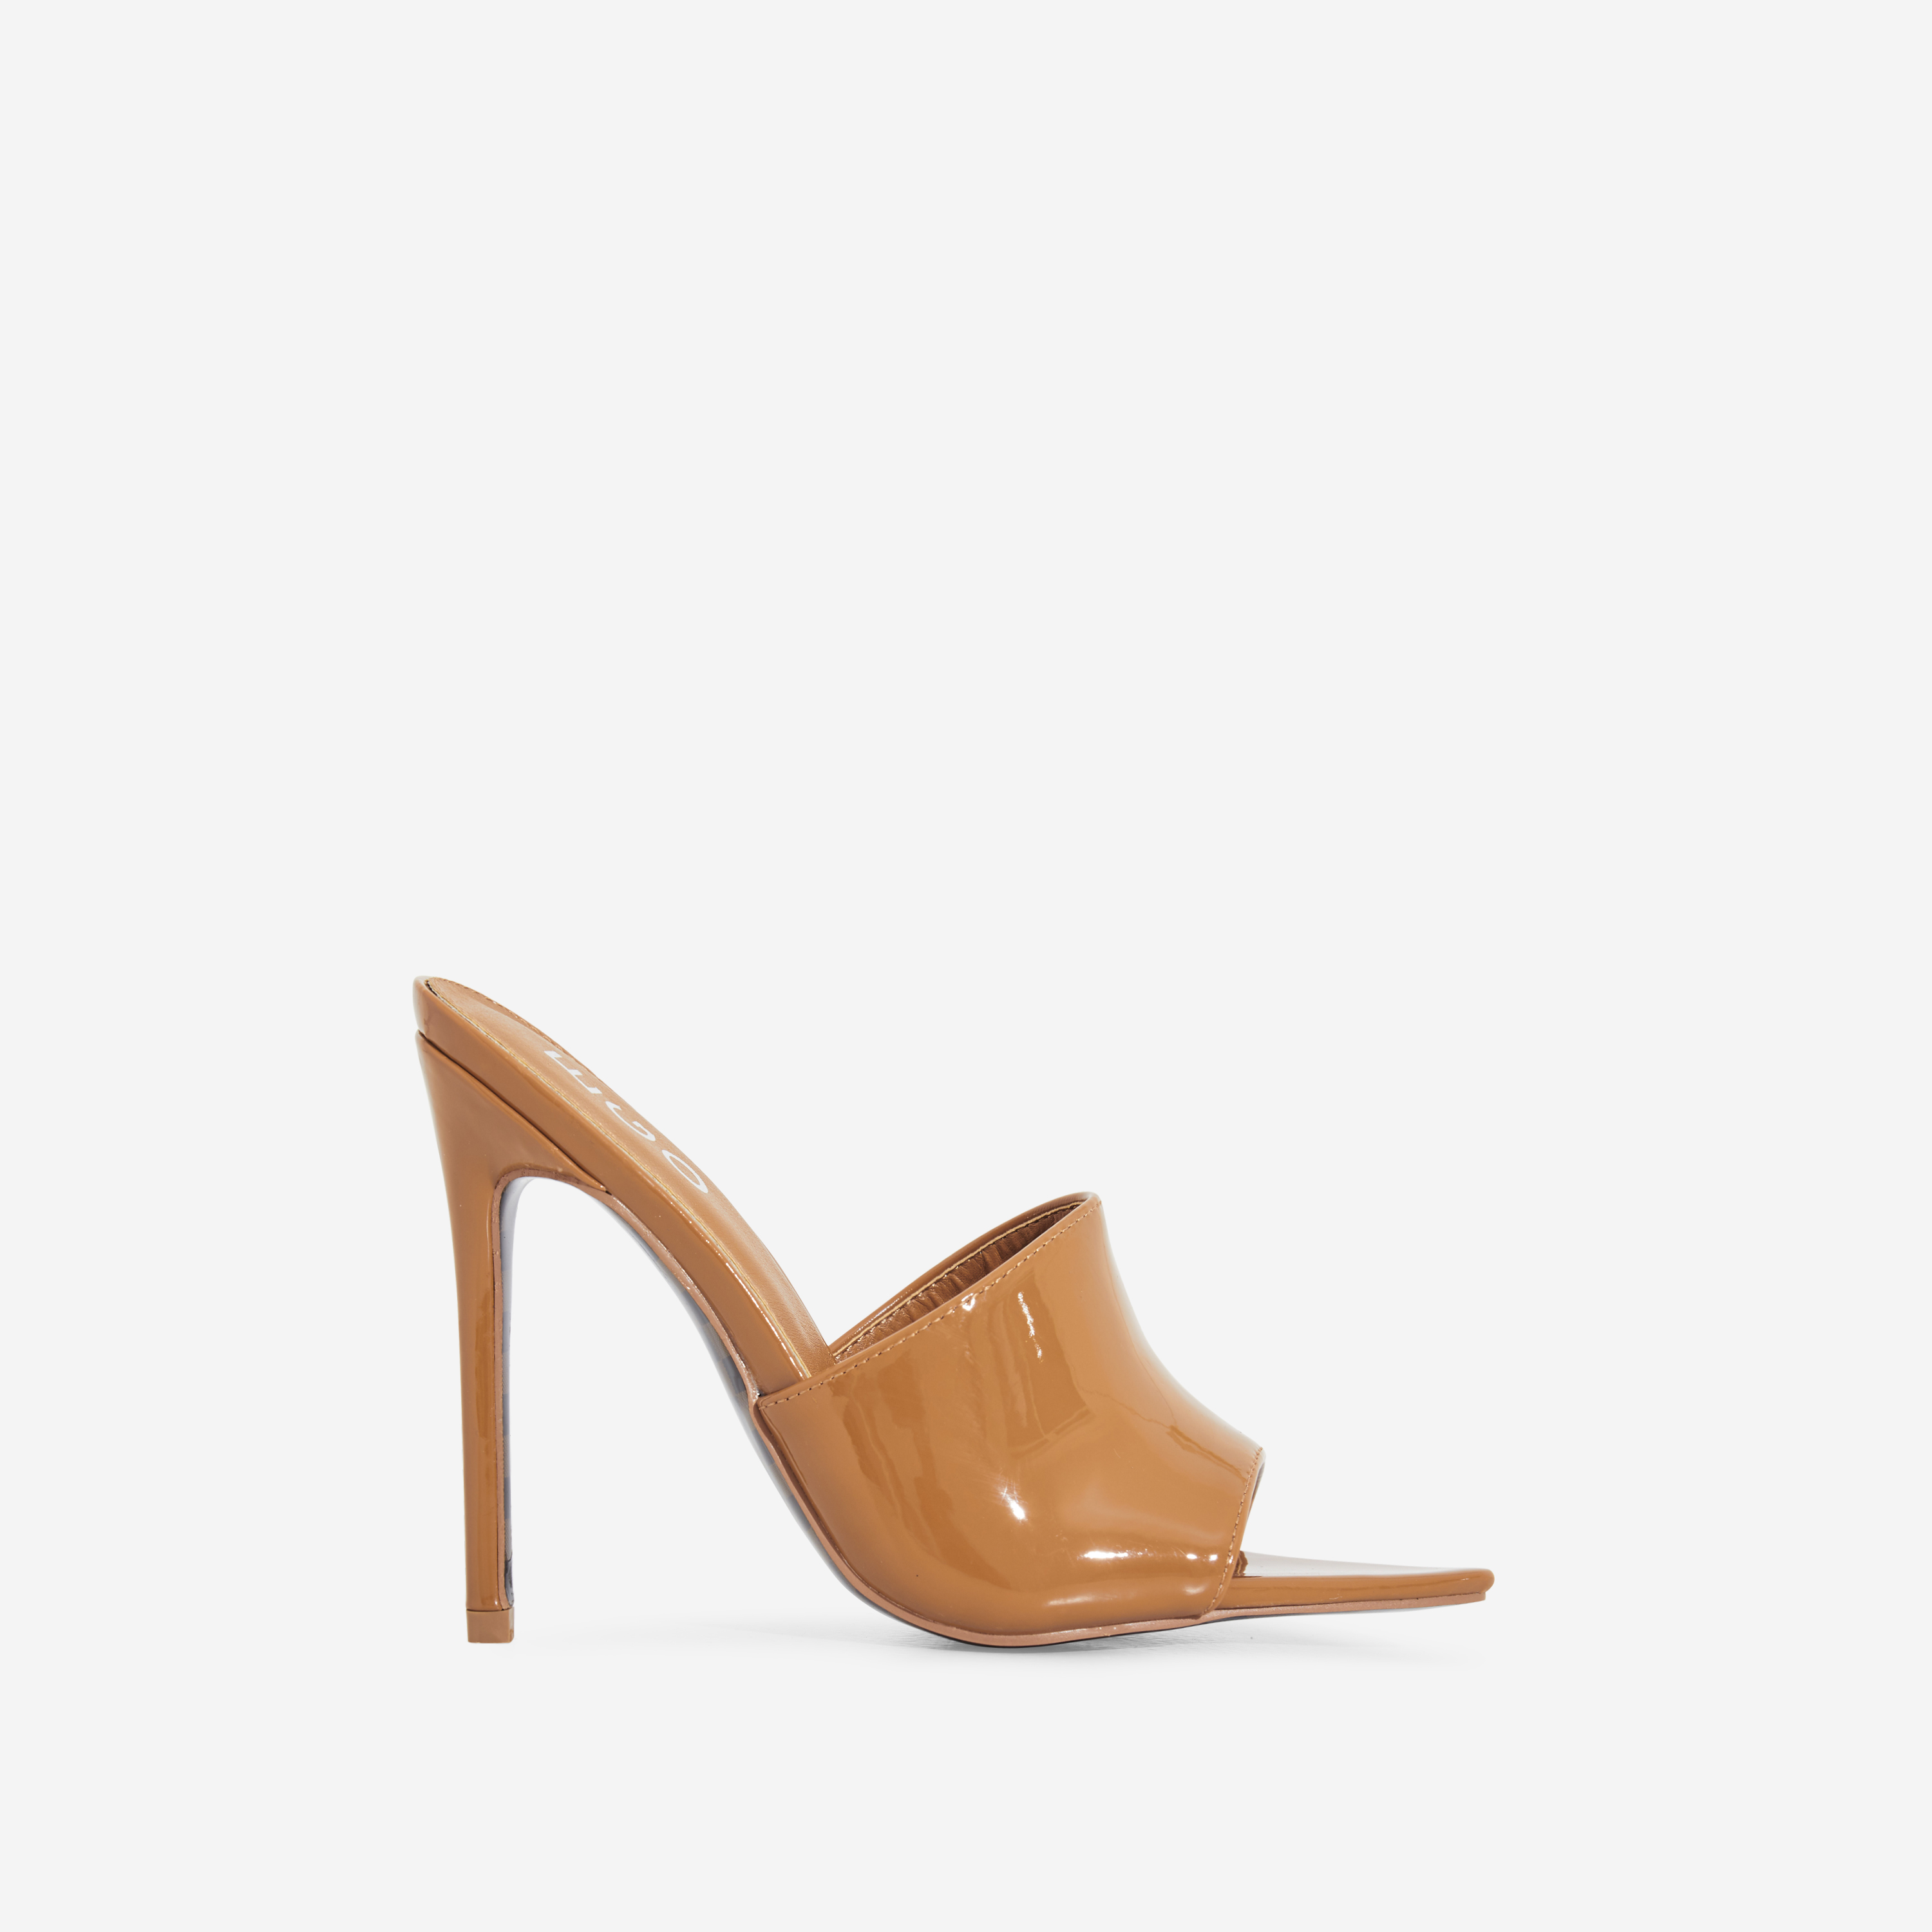 Koko Check Print Sole Pointed Peep Toe Mule In Mocha Patent